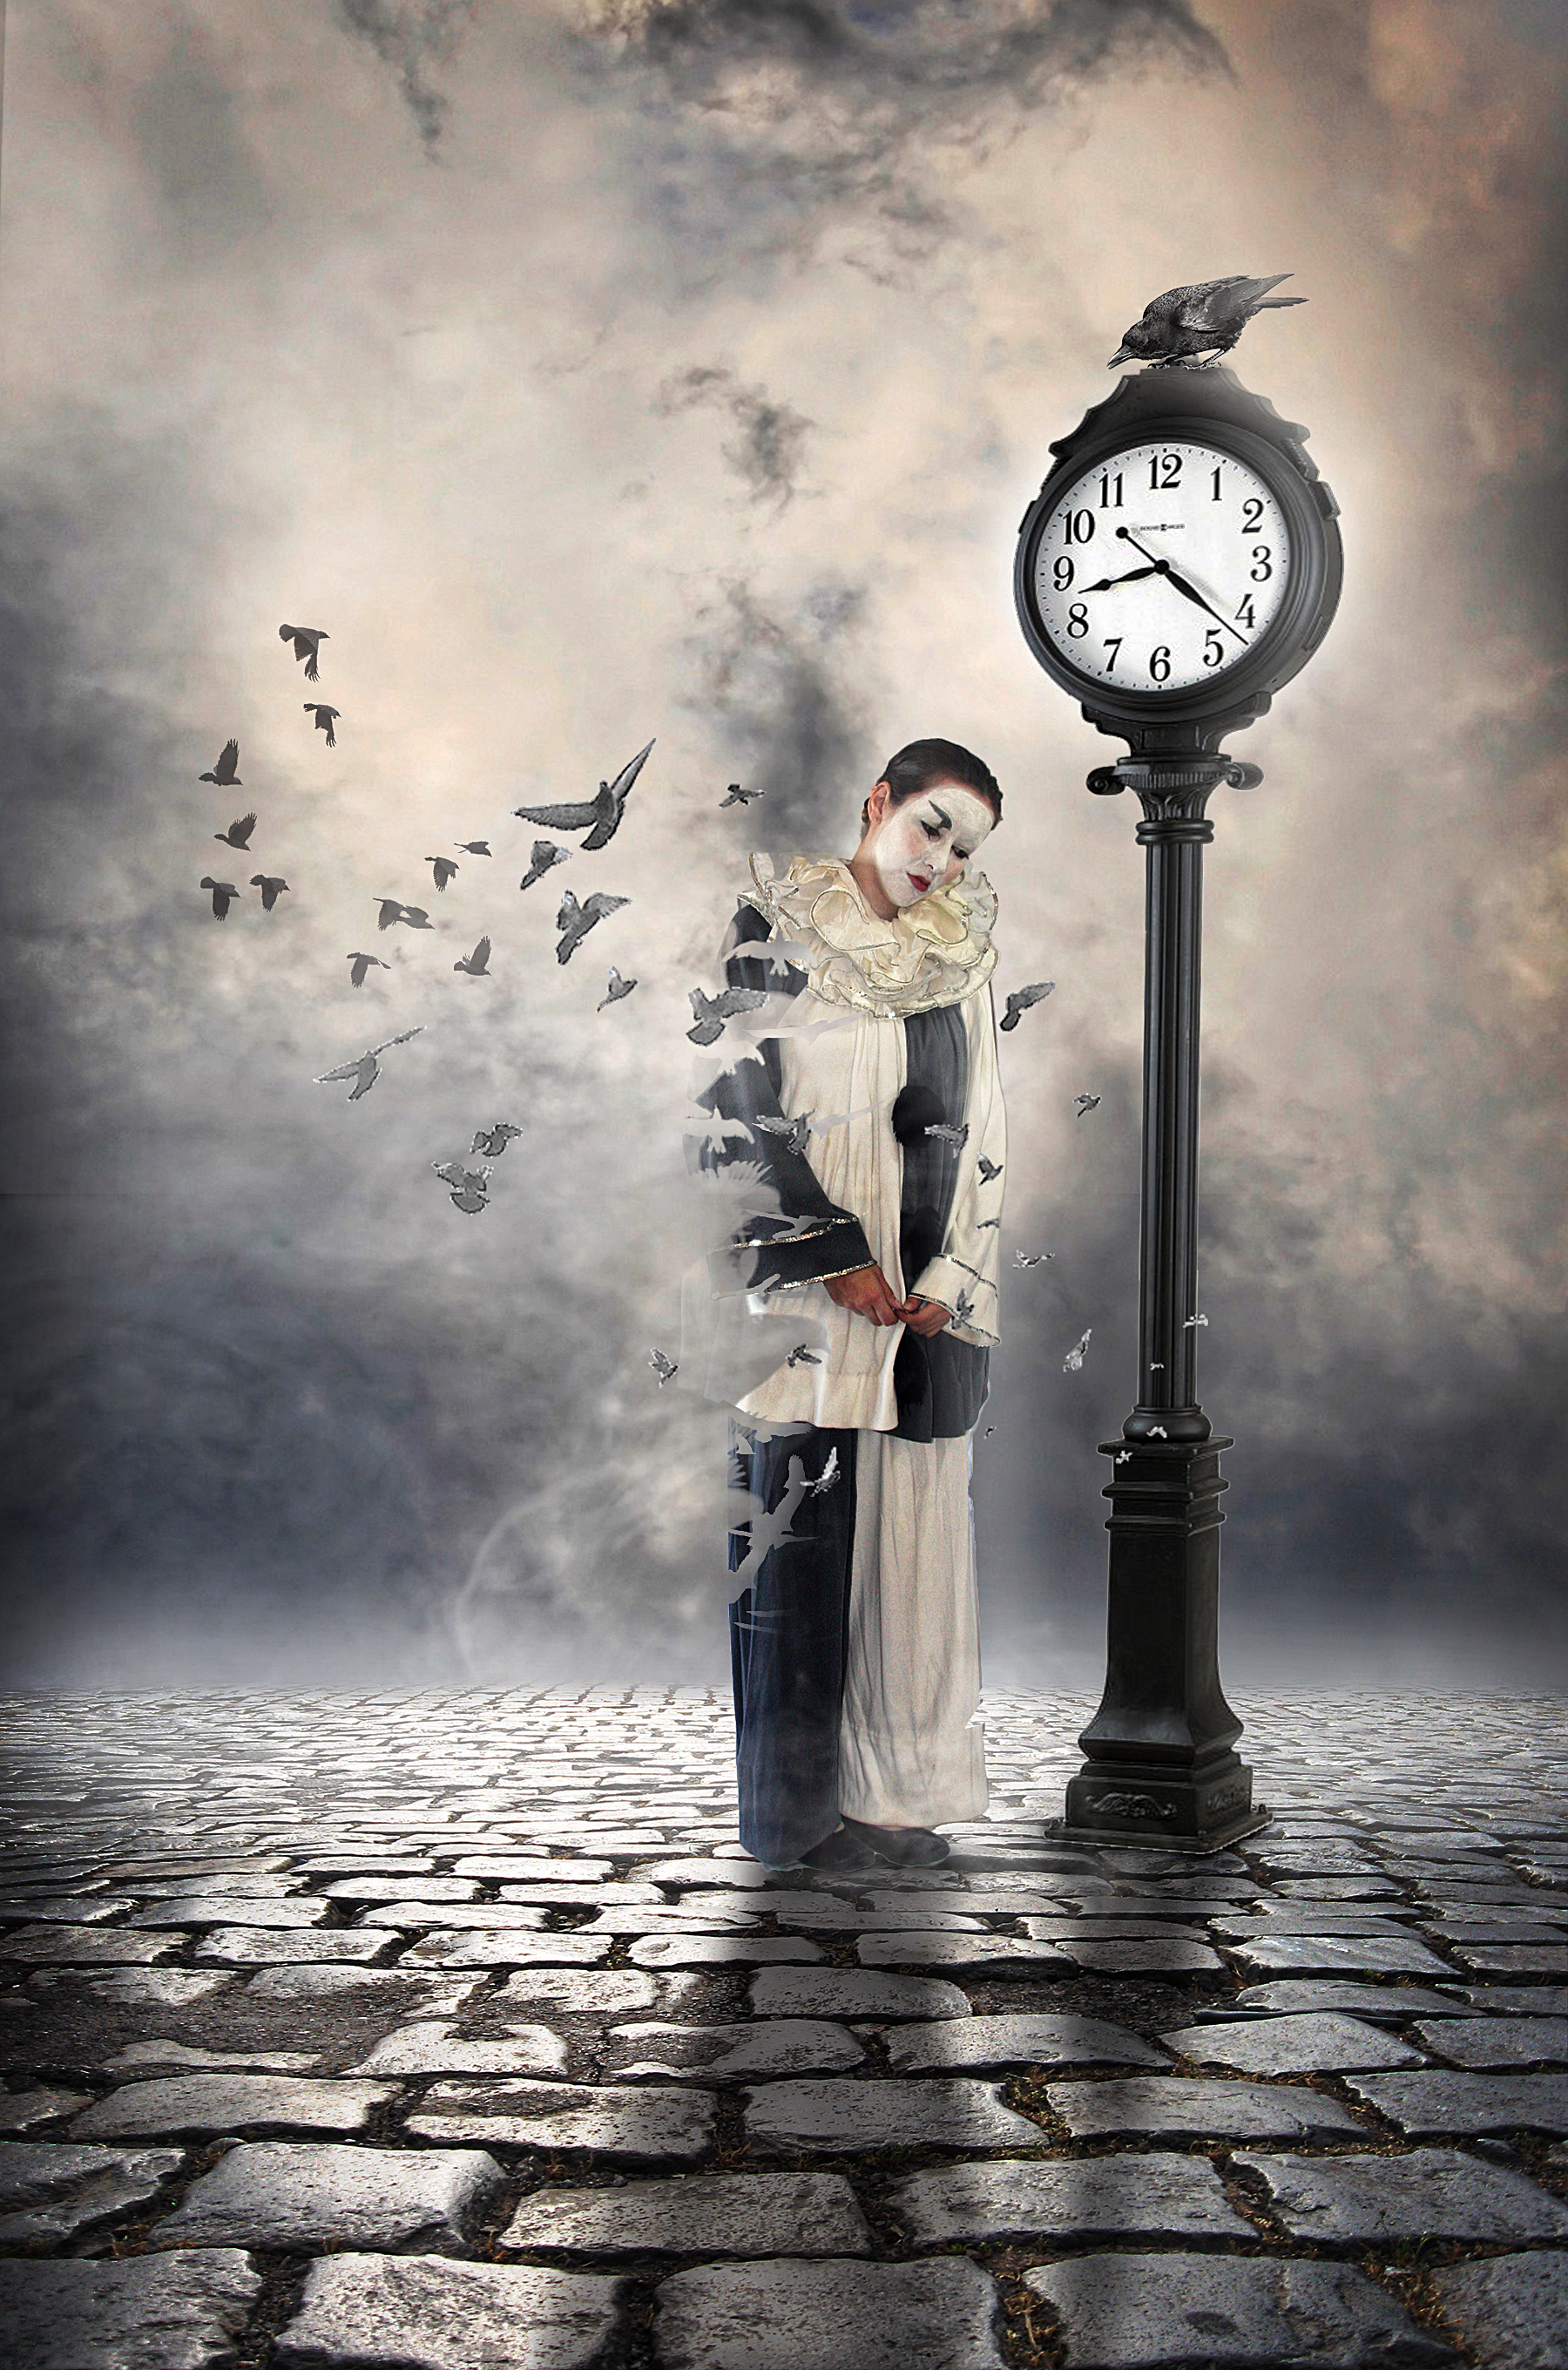 Time is up beginner compositing tutorial by rigoszabi on deviantart beginner compositing tutorial by rigoszabi baditri Gallery